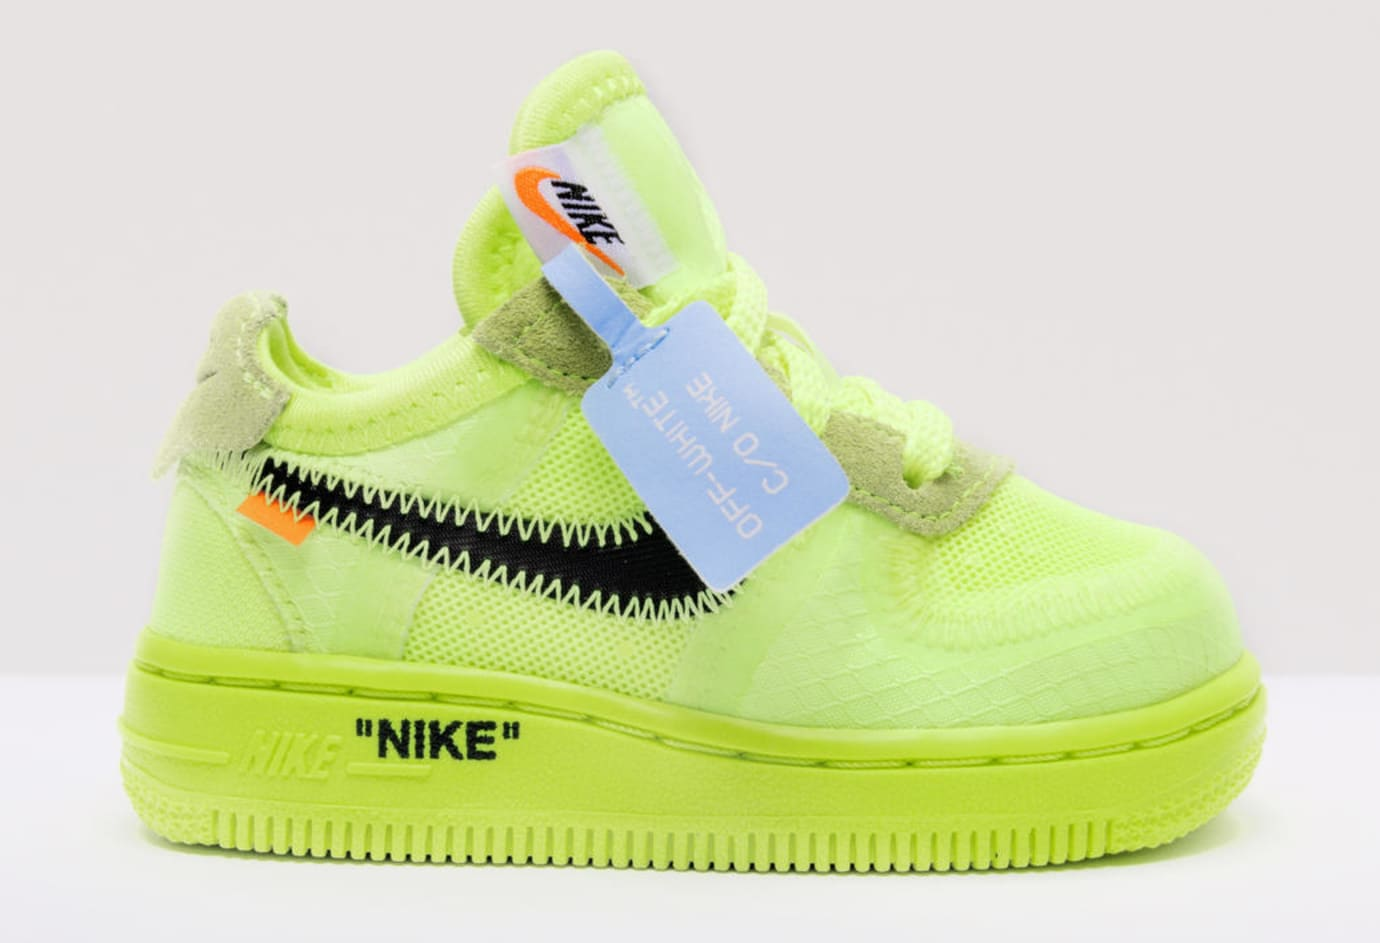 Virgil Abloh x Nike Air Force 1 'The 10' 'Volt/Cone/Hyper Jade' Kids (Lateral)